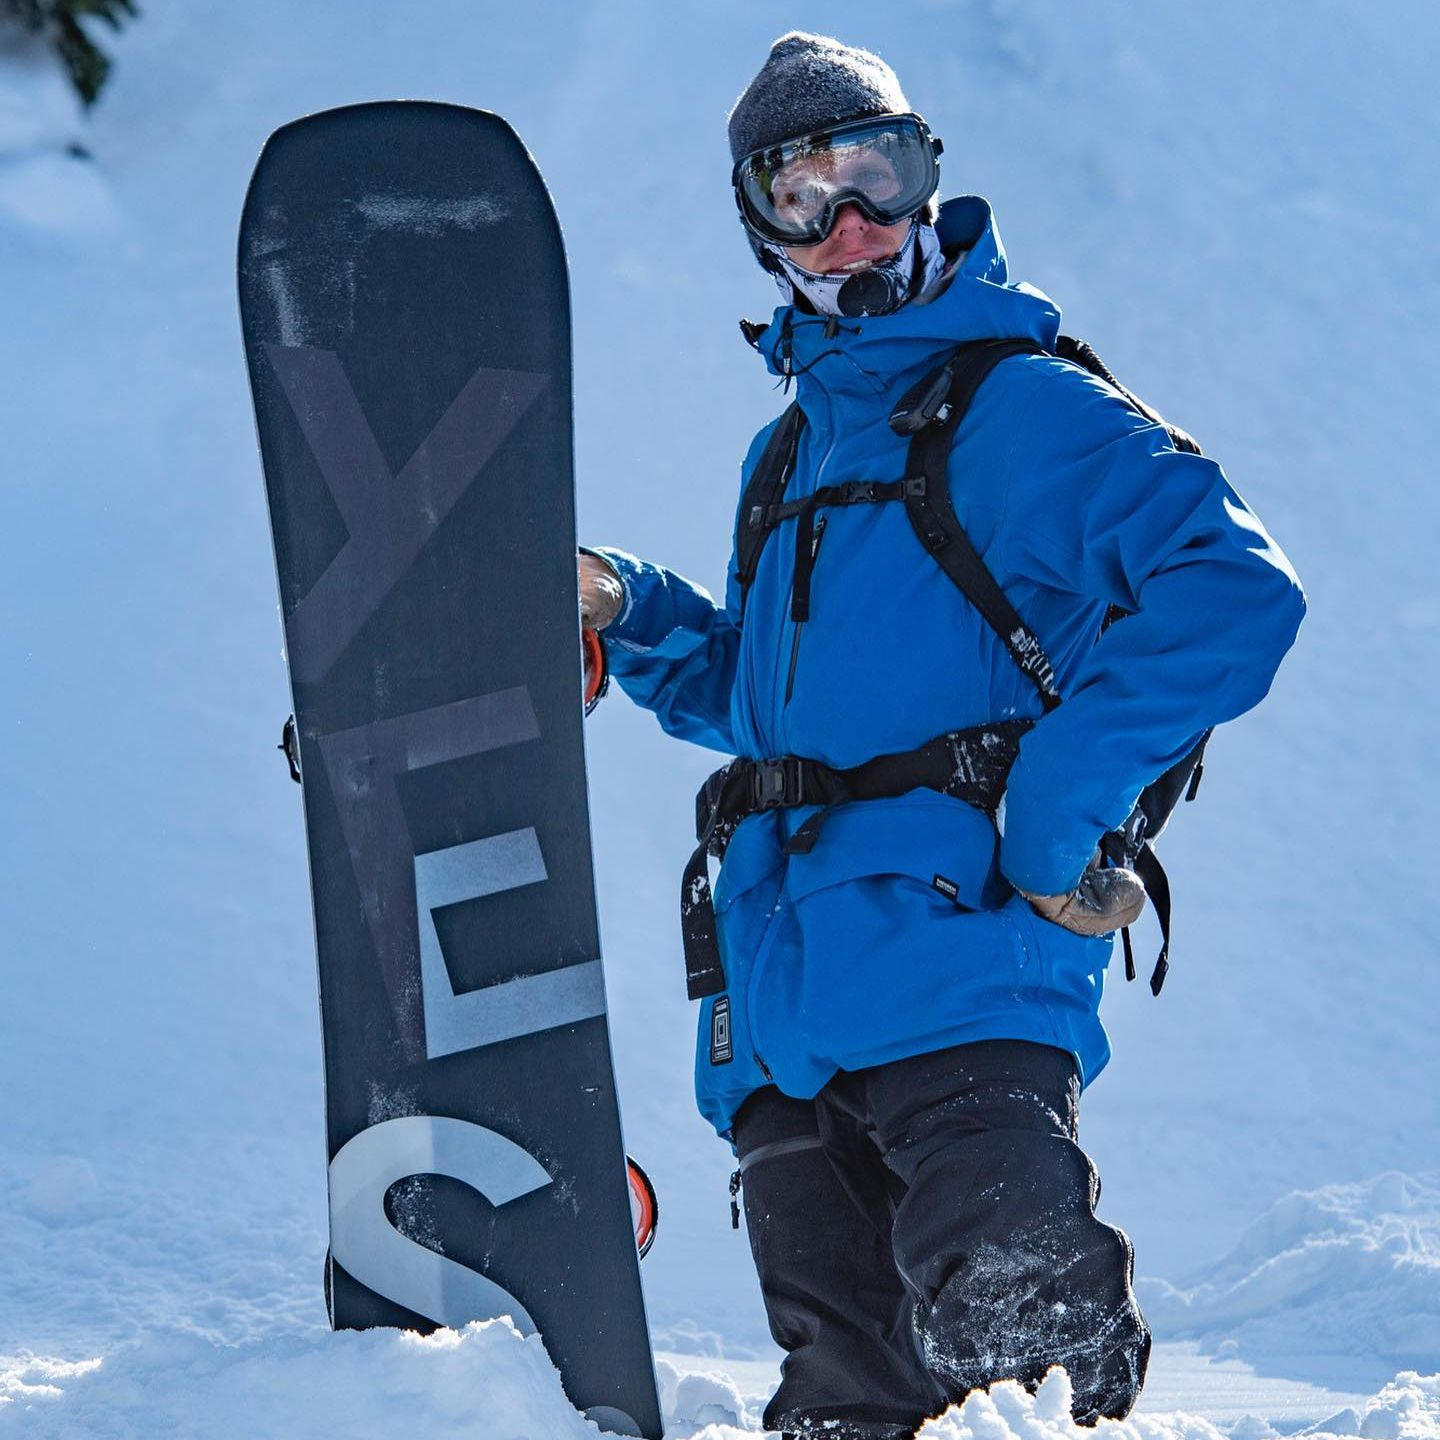 Snowboard Yes 2022